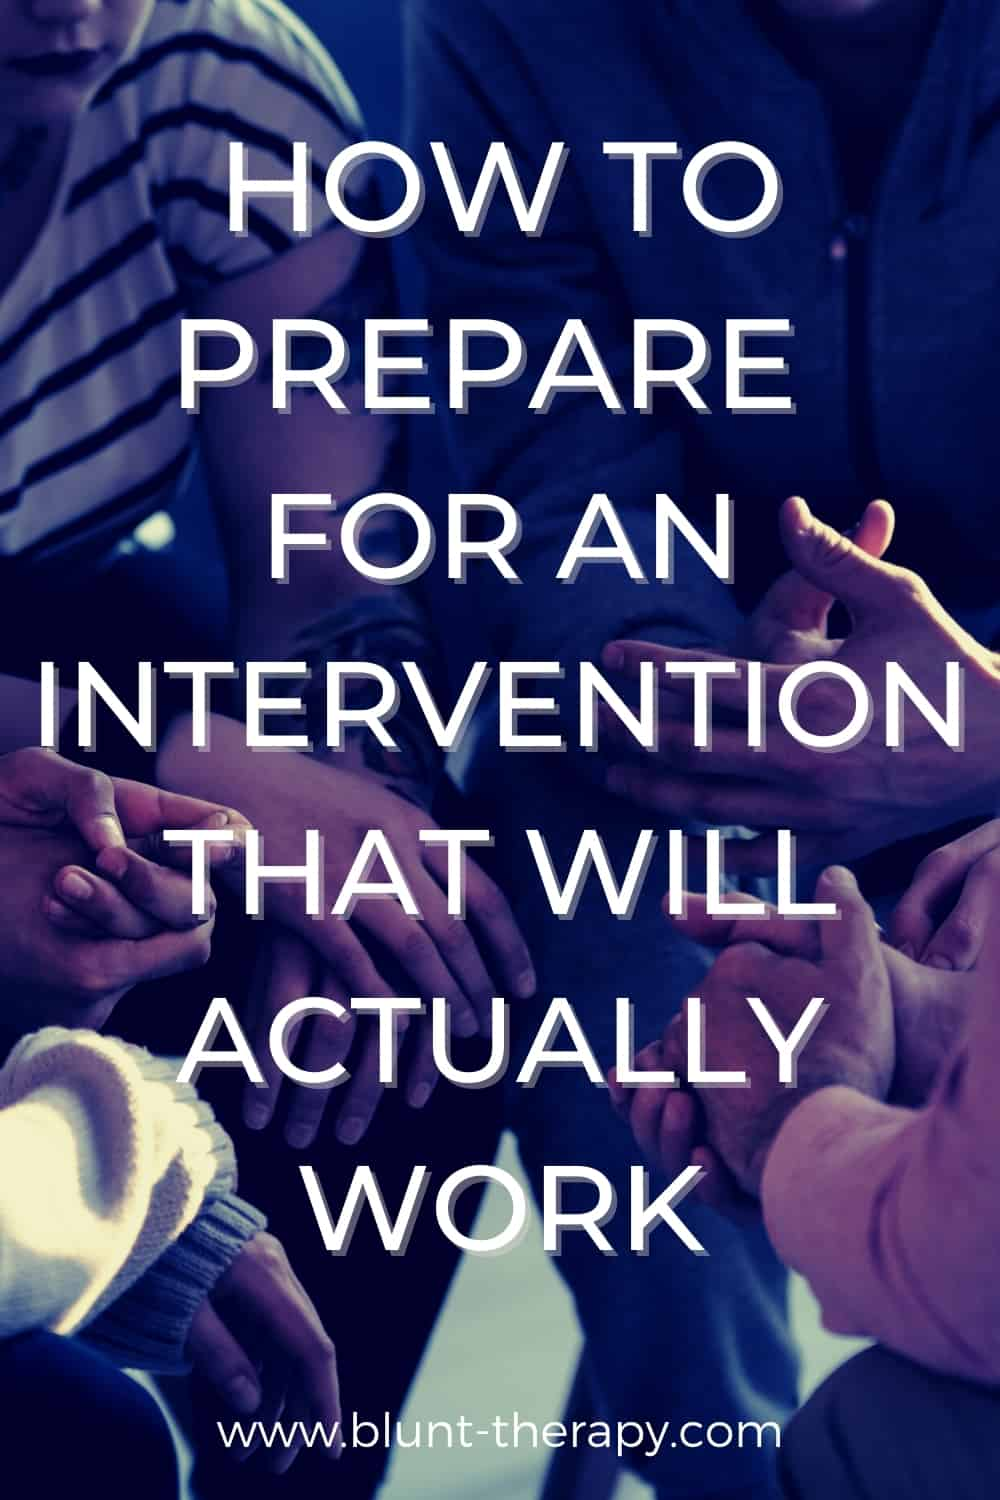 How To Prepare For An Intervention That Will Actually Work